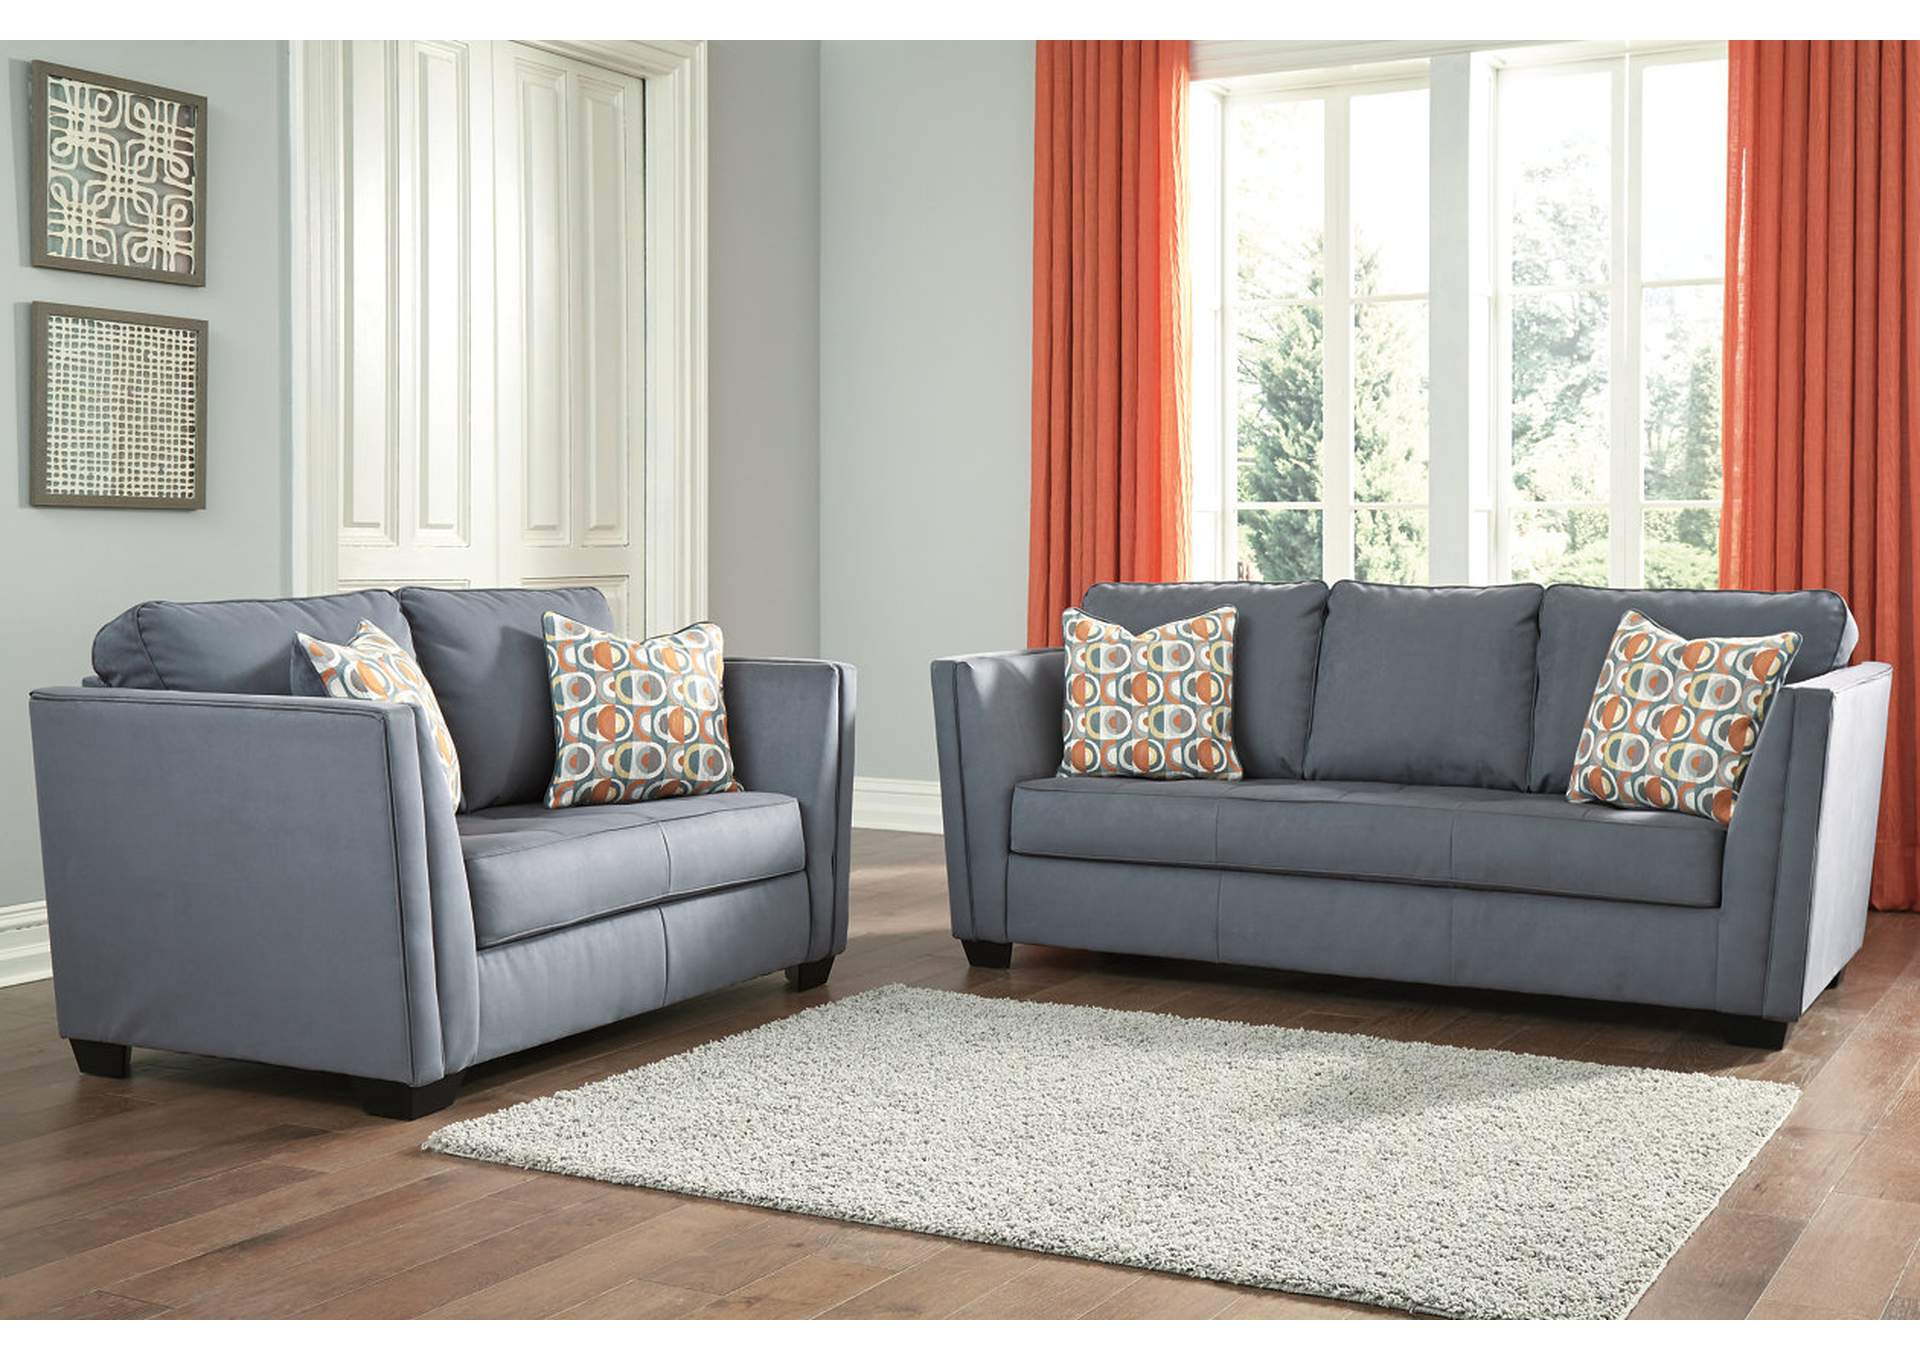 Filone Steel Sofa & Loveseat,Signature Design By Ashley